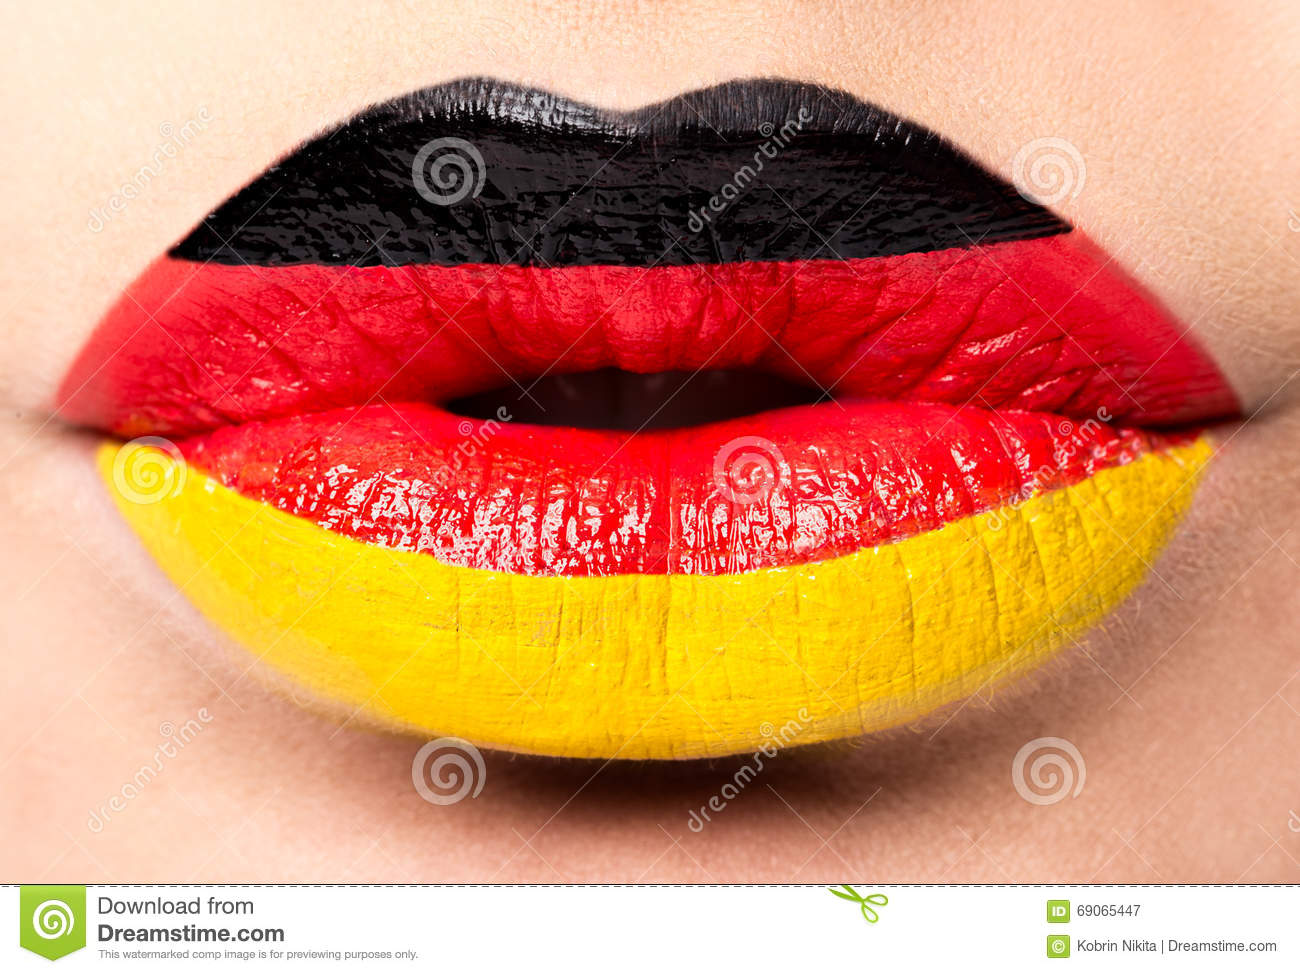 Female lips close up with a picture flag of Germany. black, red, yellow.